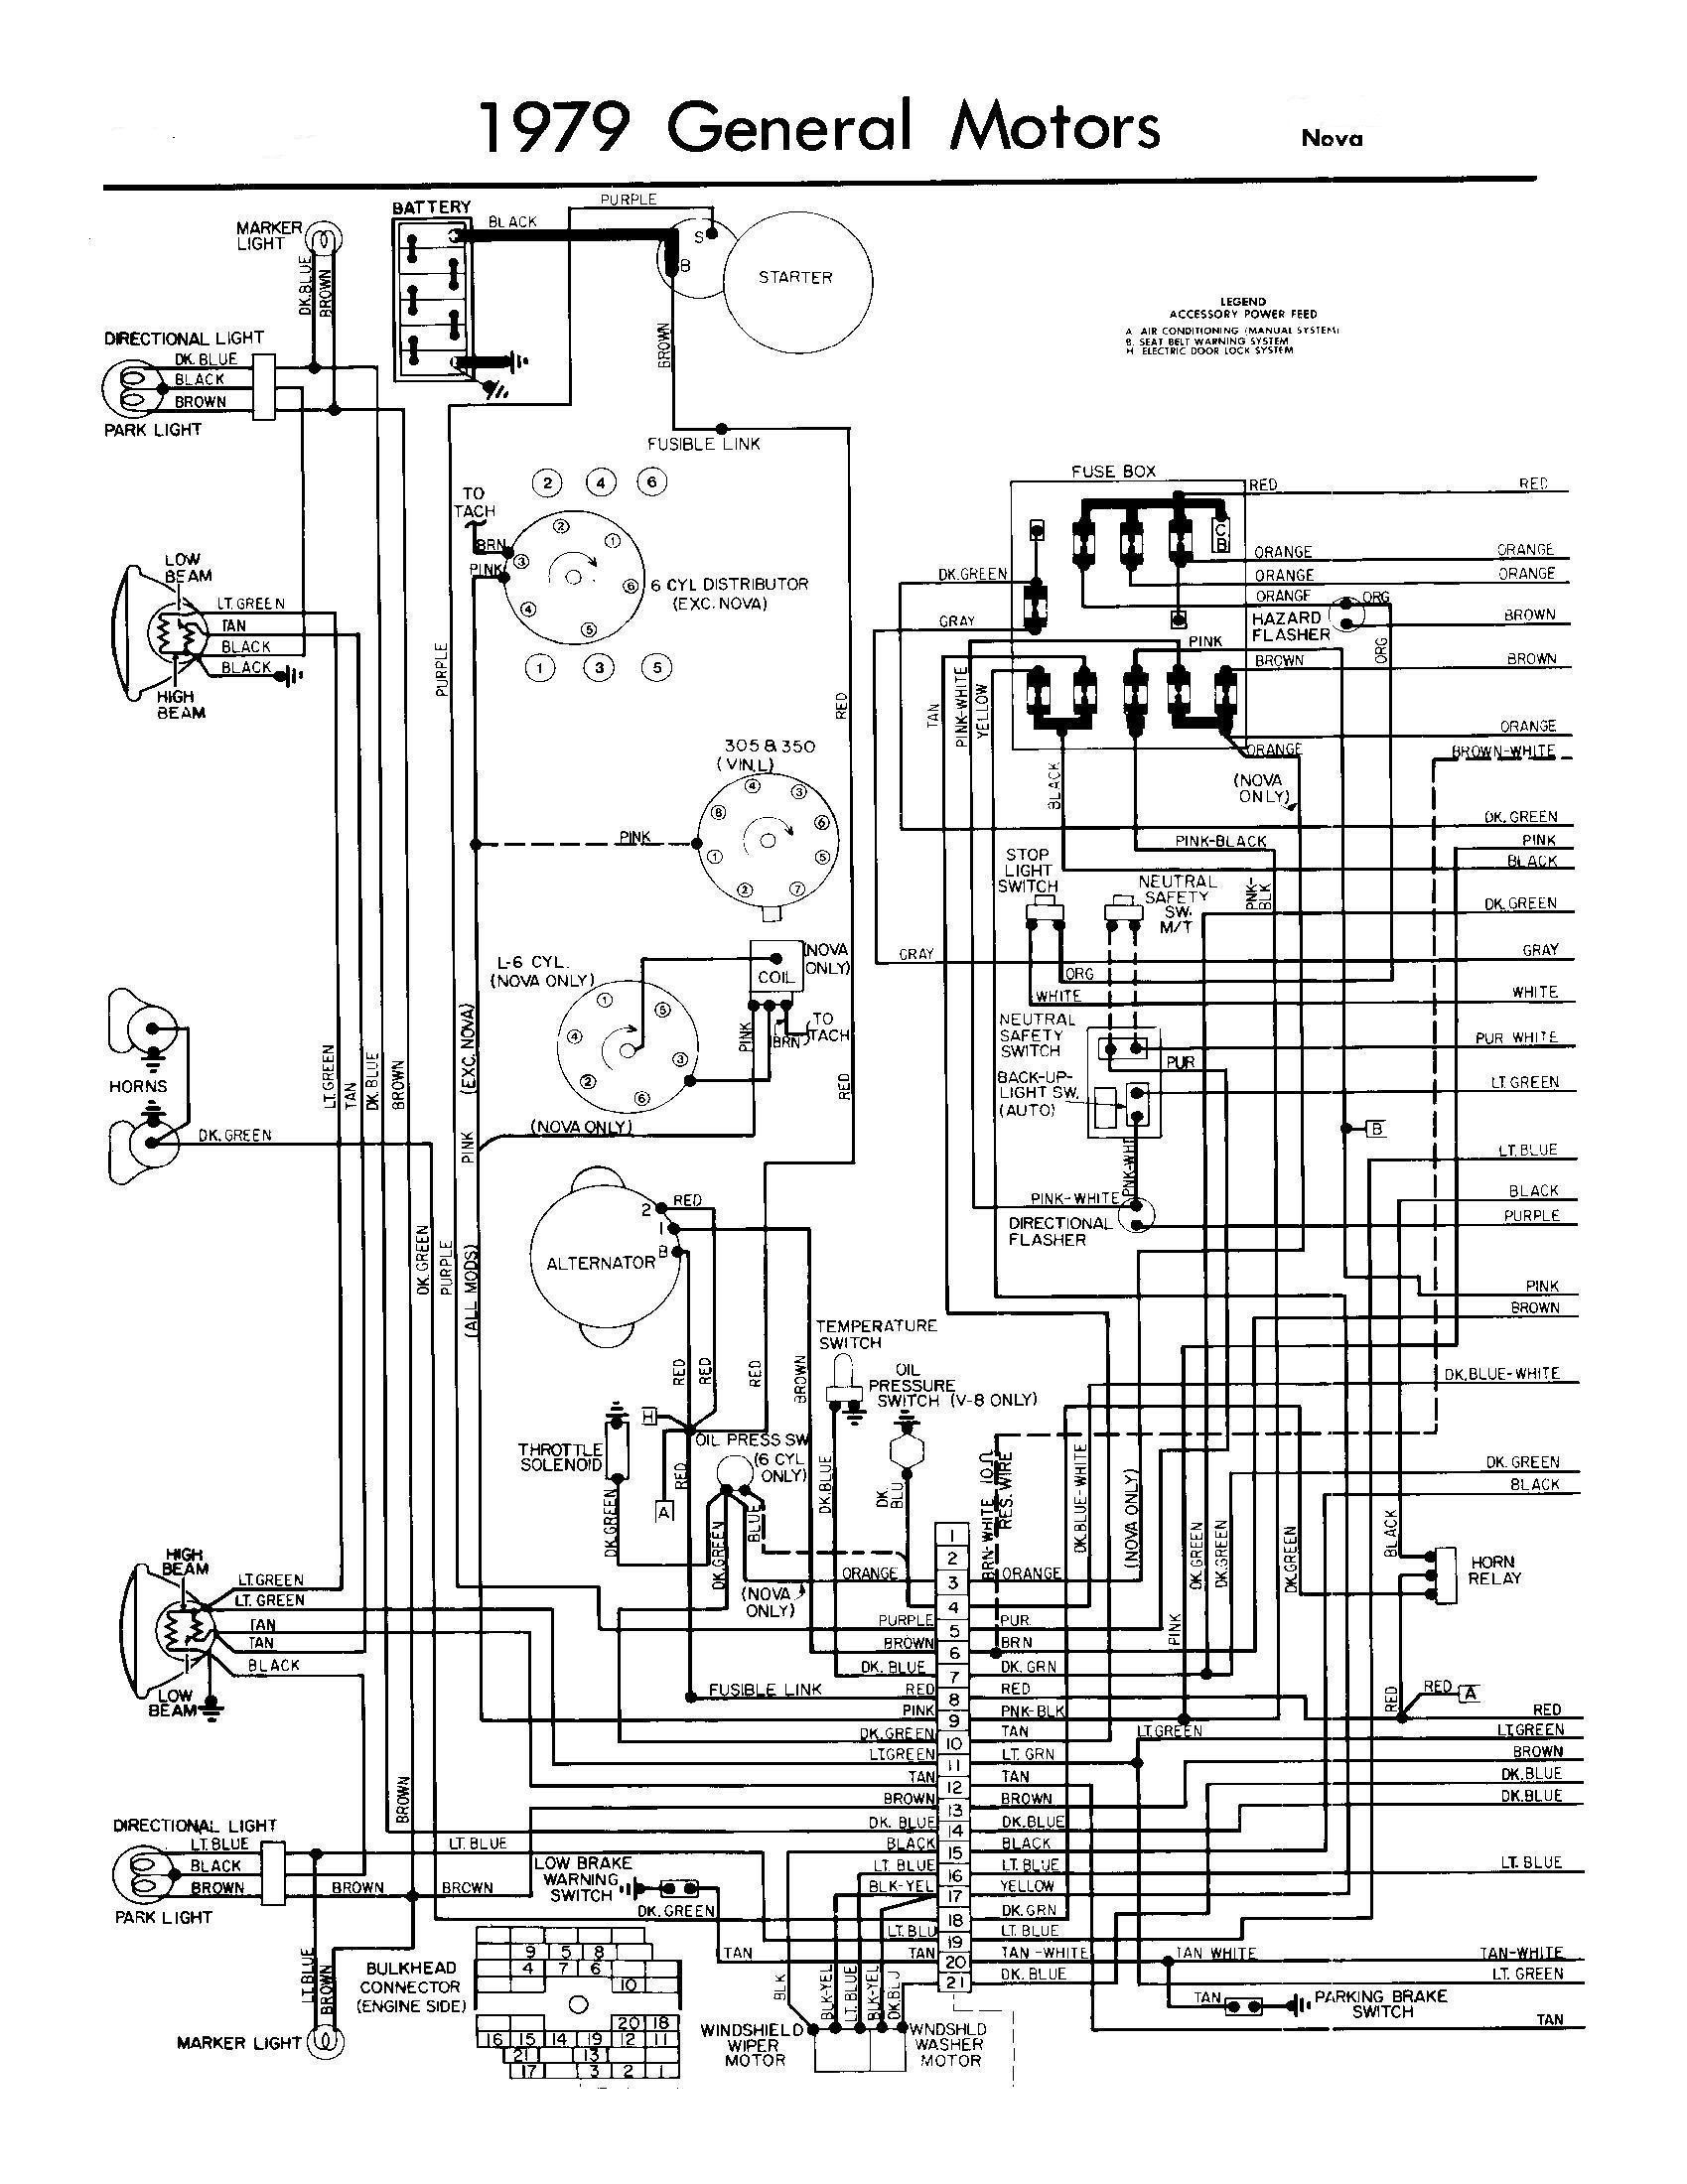 wire alternator wiring diagram on chevy nova engine wiring diagram rh ayseesra co 1966 Chevy C20 Wiring-Diagram 64 Chevy Impala Wiring Diagram